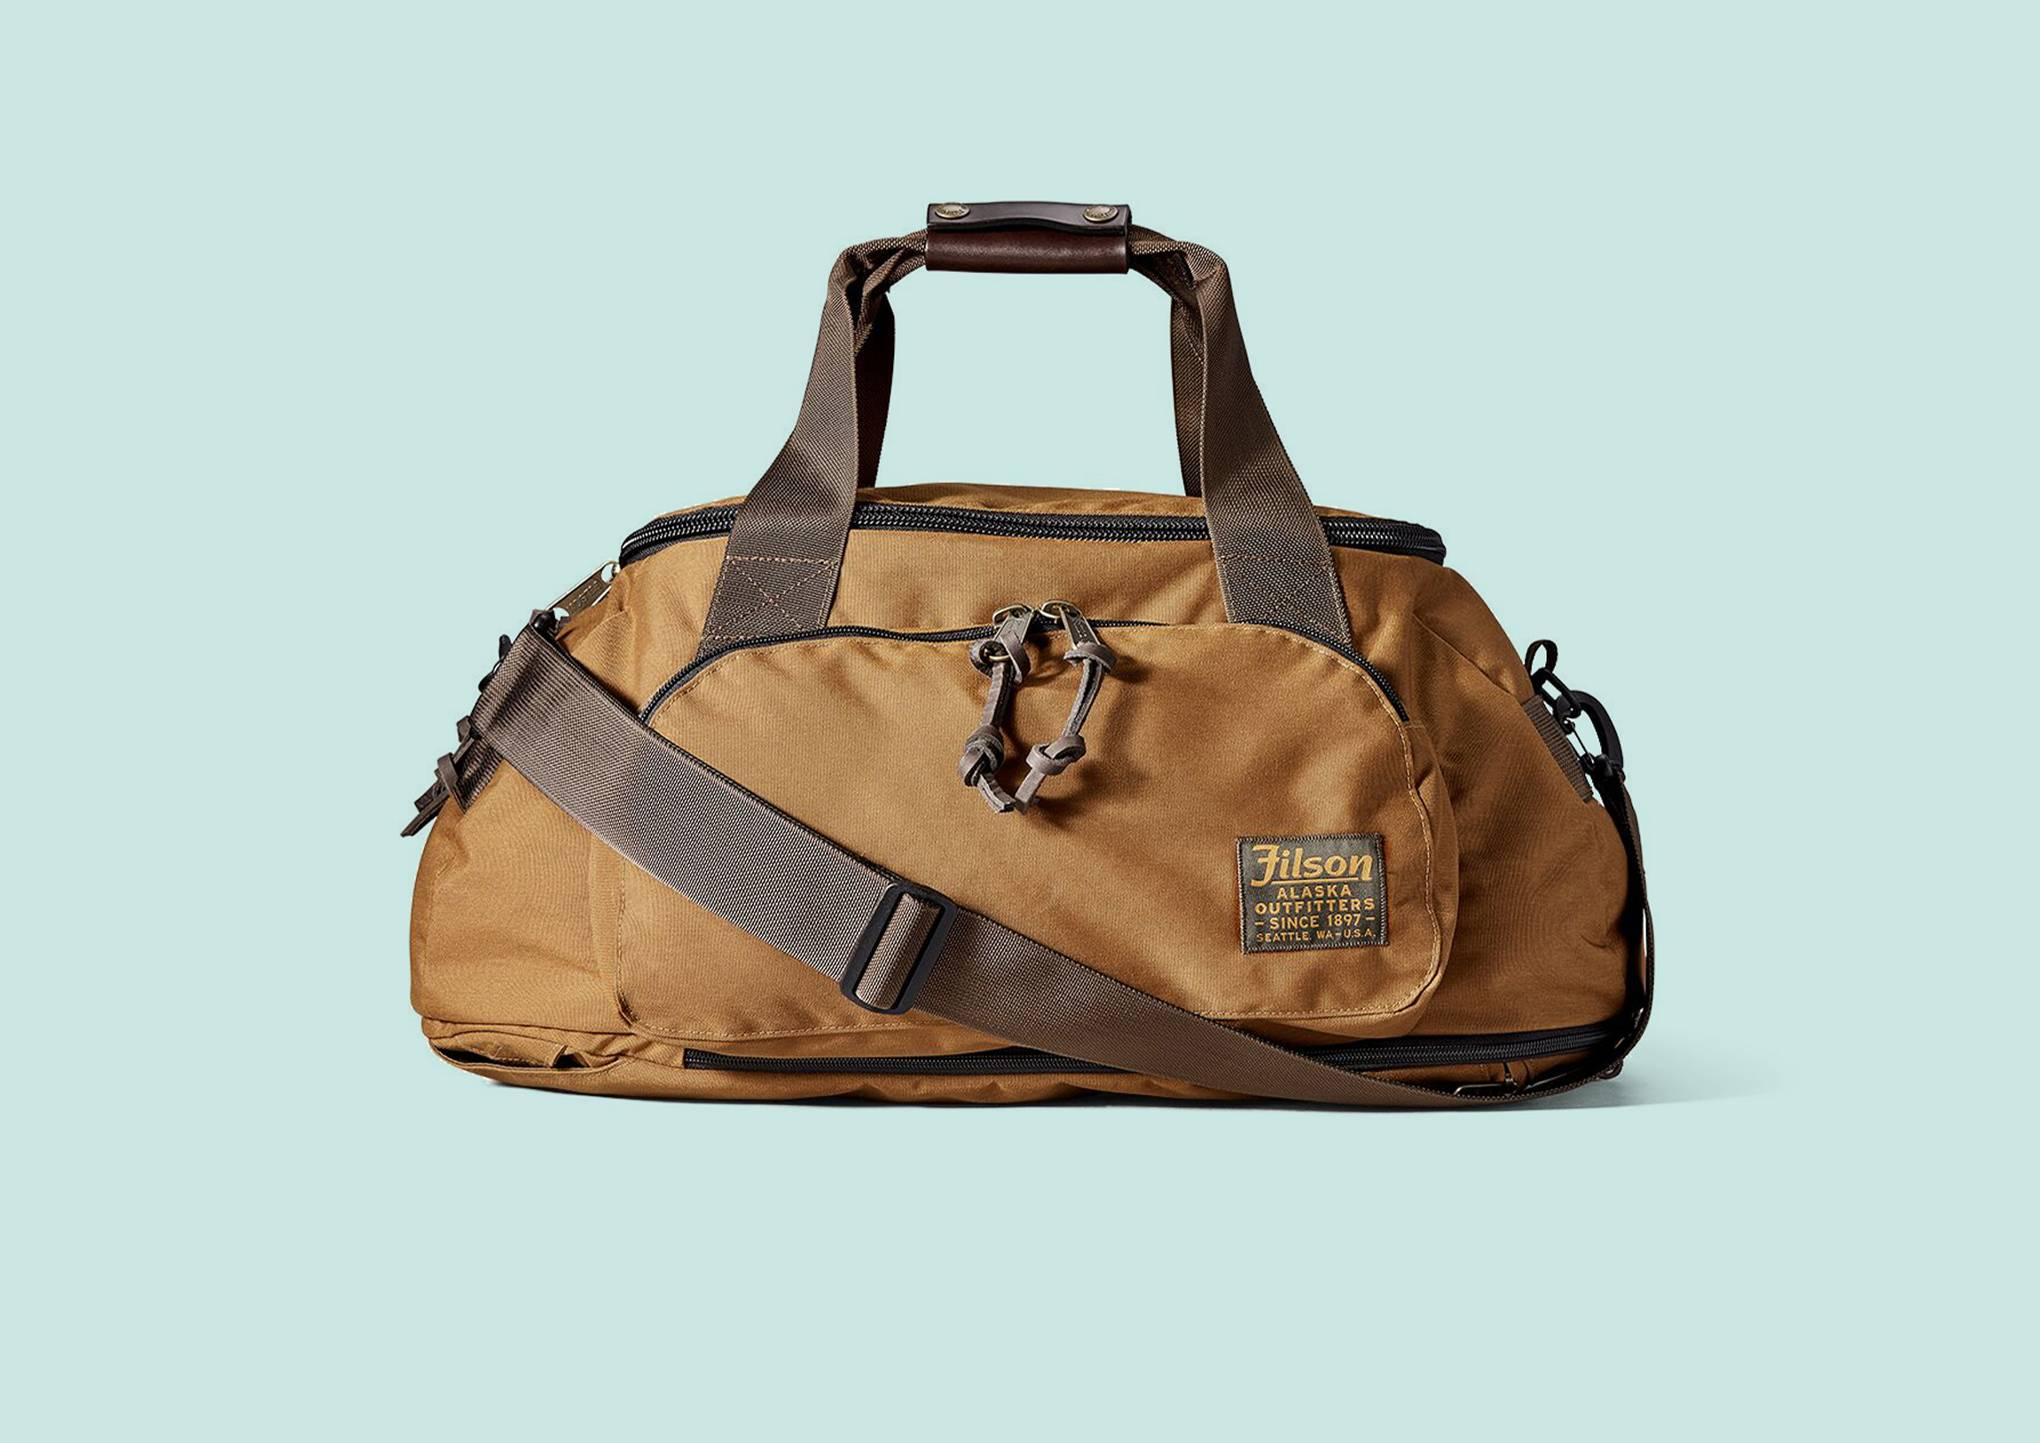 5251d24b193 Filson's Ballistic Nylon Duffle Pack is one of the best bags ever made |  WIRED UK